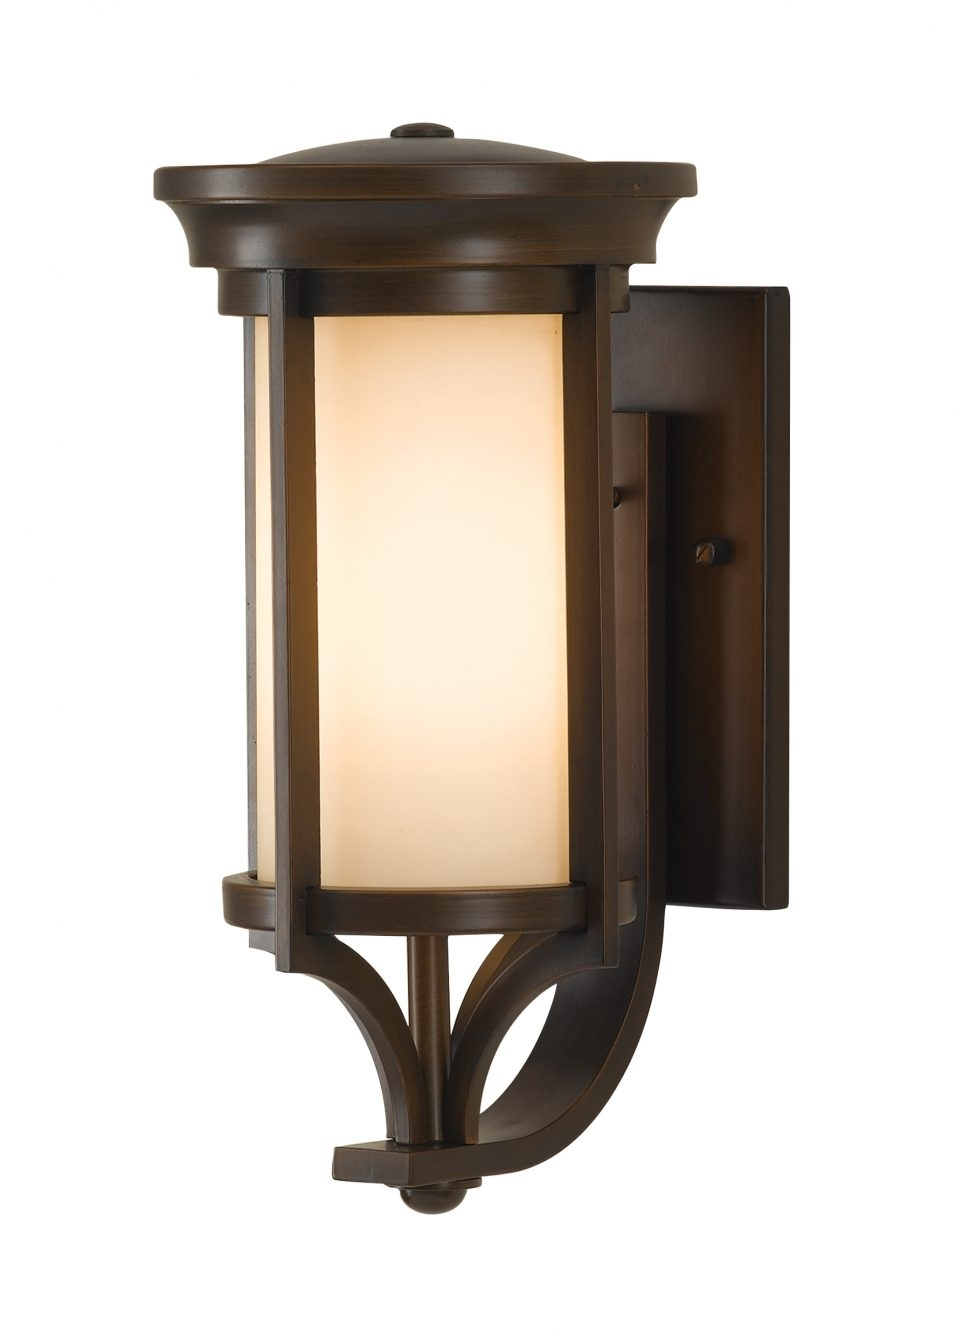 Electrical Wiring : Guiding Outdoor Ceiling Light Fixture With With Outdoor Ceiling Light With Electrical Outlet (#9 of 15)